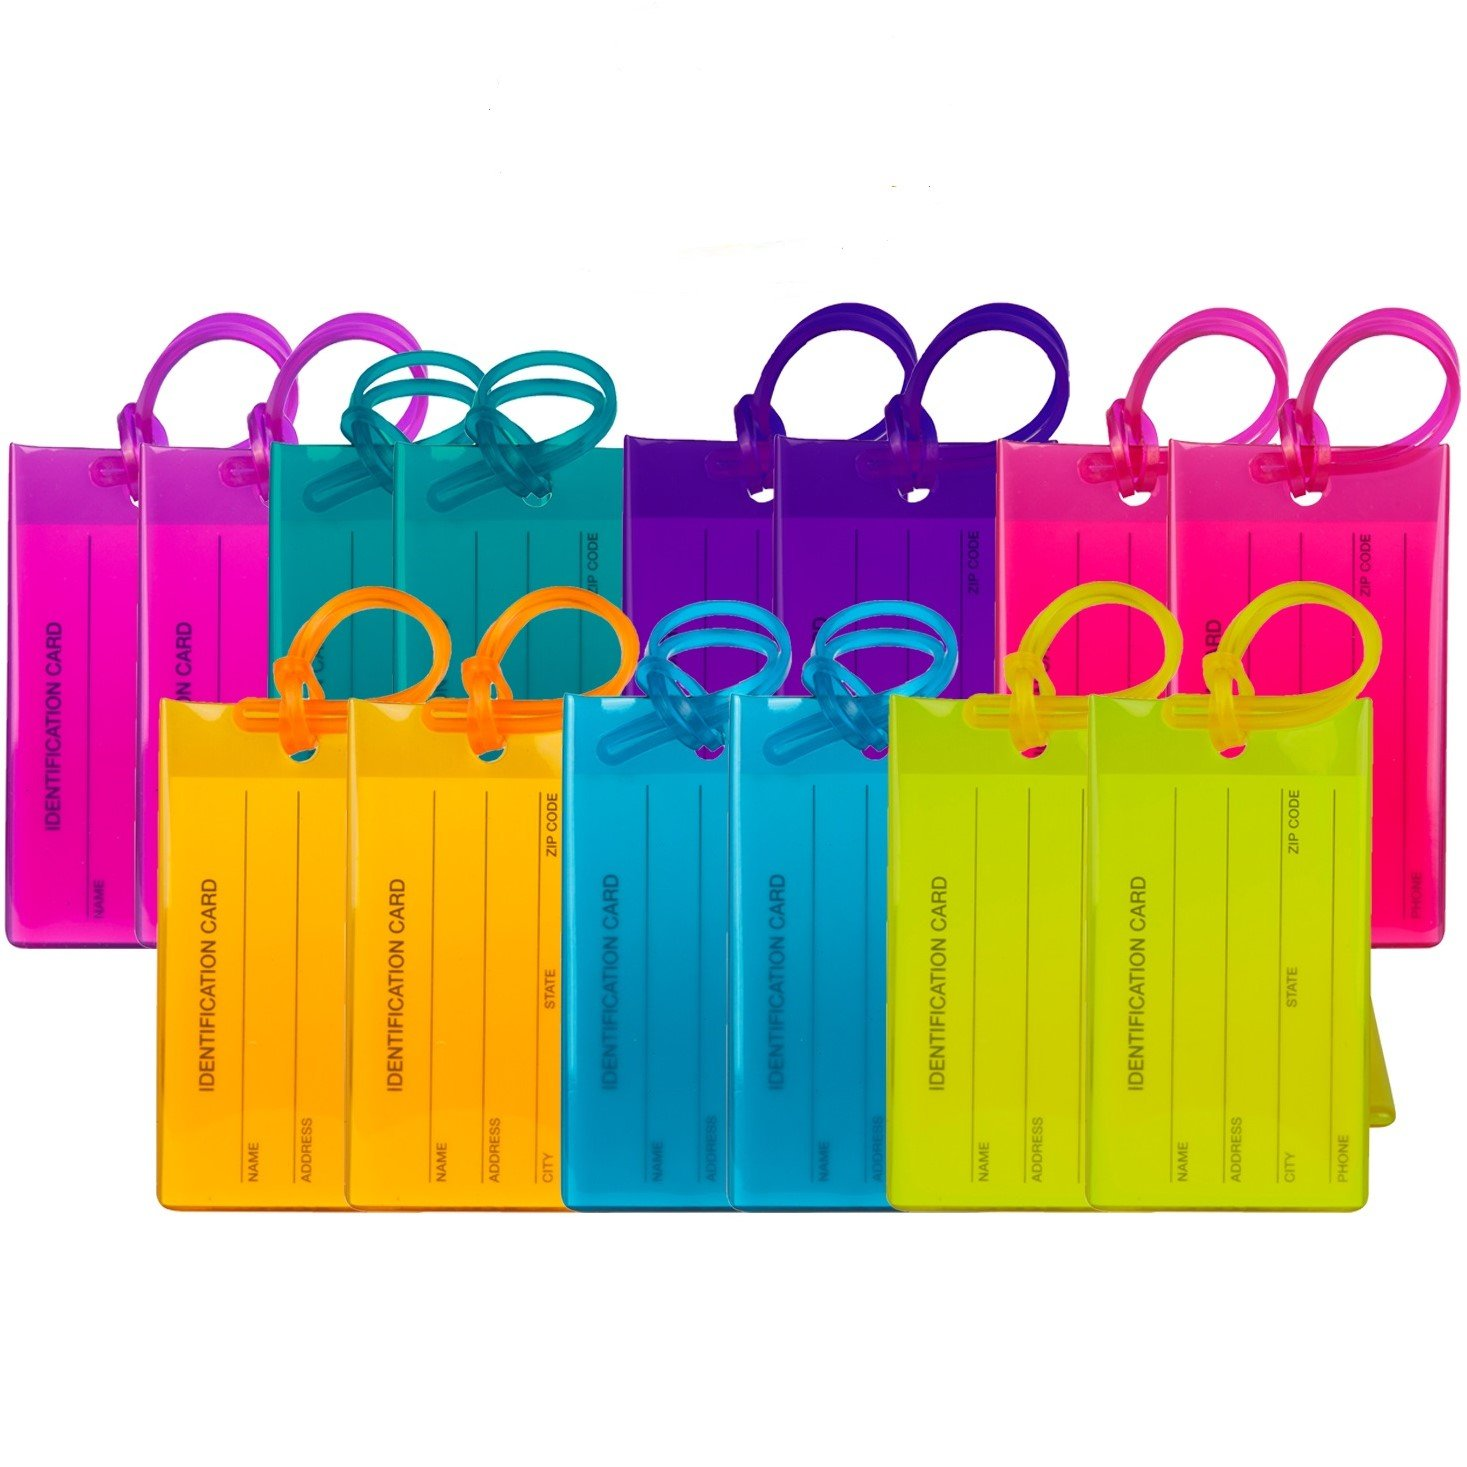 14 Pack TravelMore Luggage Tags For Suitcases, Flexible Silicone Travel ID Identifier Labels Set For Bags & Baggage - Multi Color Pack